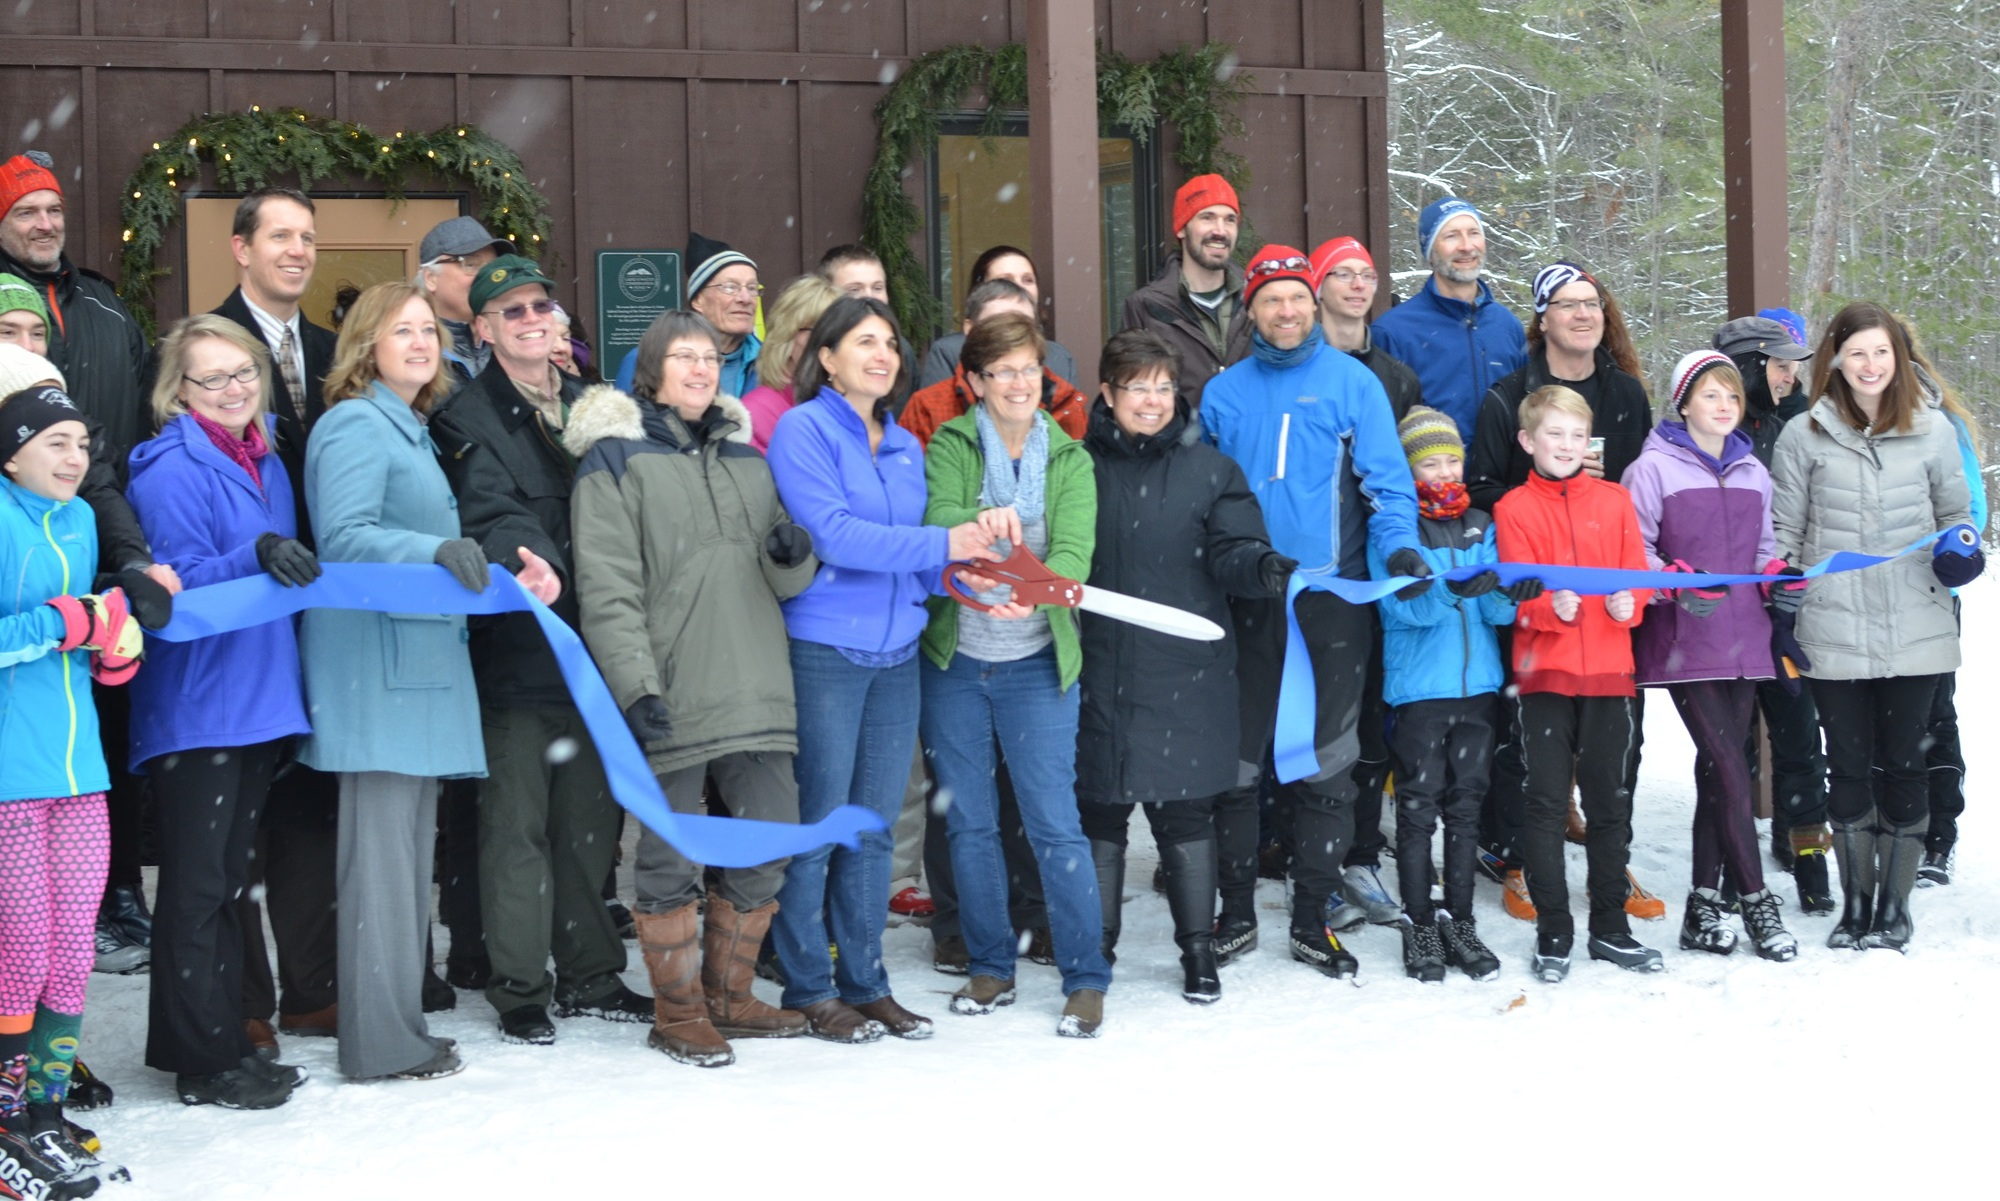 A large group of skiers, project partners and others gathered outside the warming hut for a ribbon-cutting ceremony.